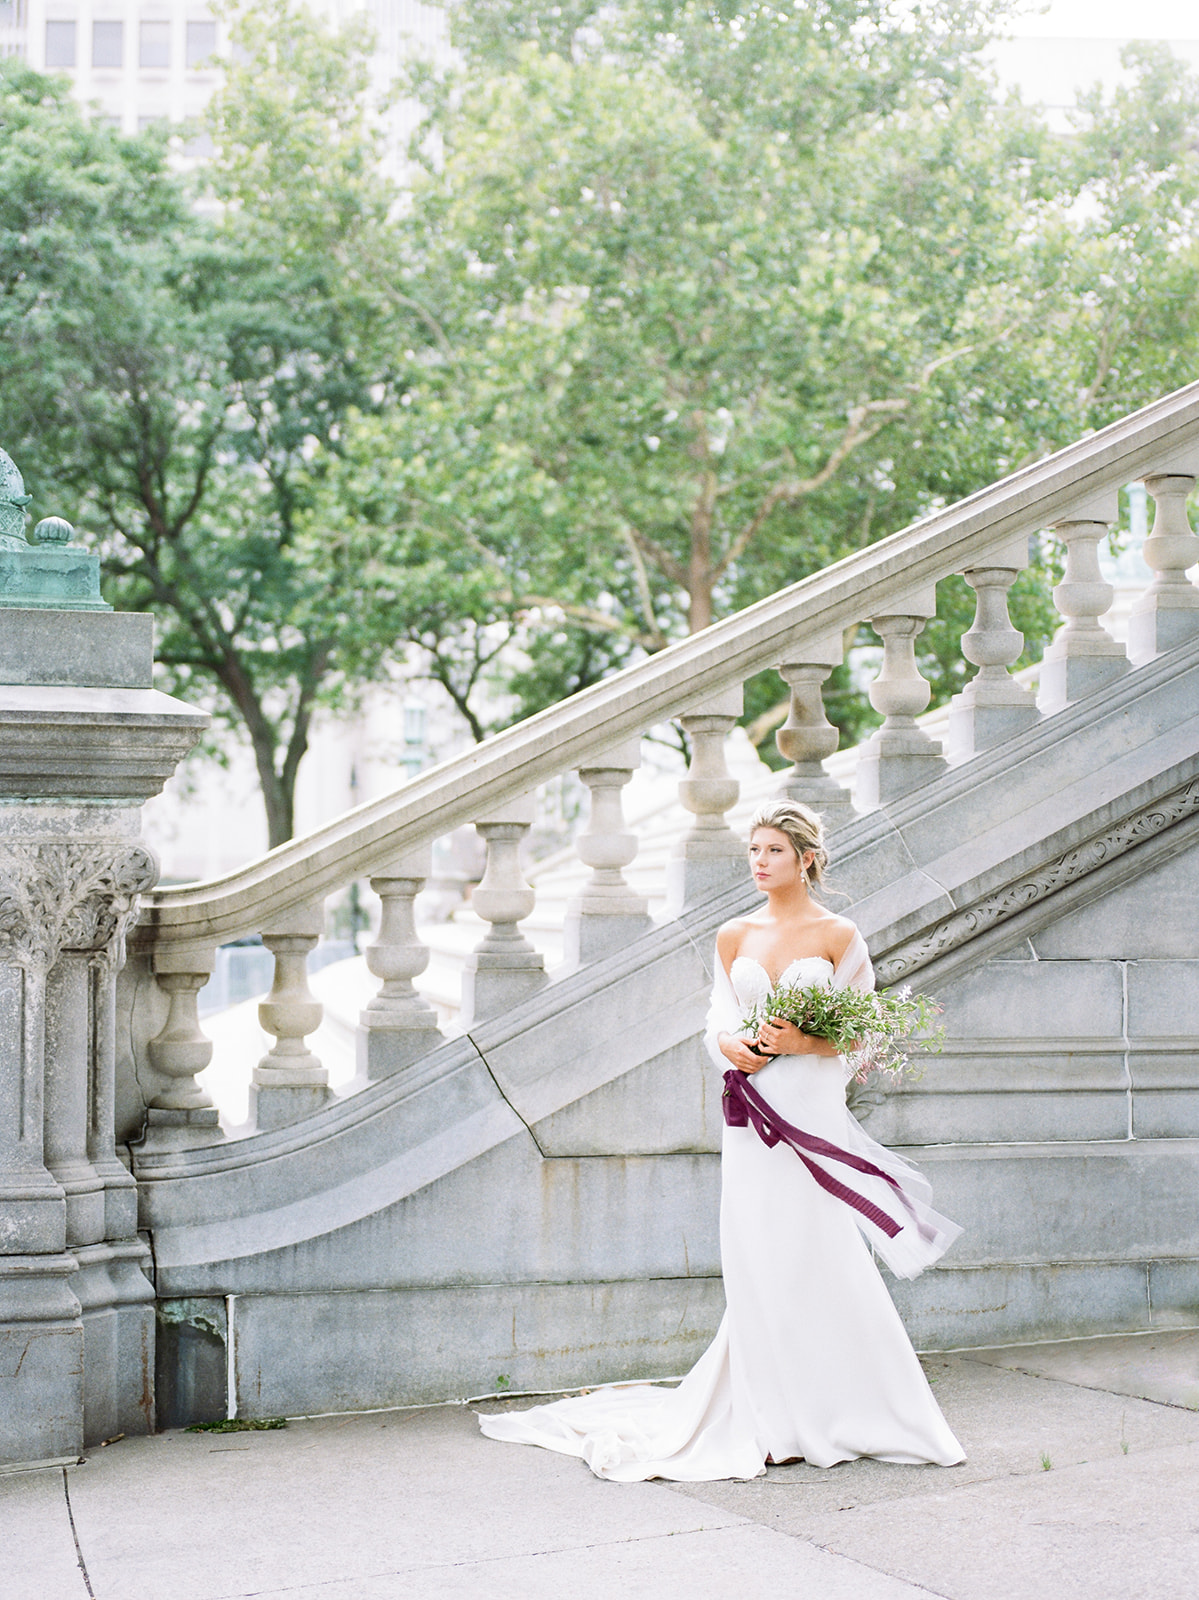 July Editorial with Angela_s Bridal by Michelle Lange Photography-67.jpg